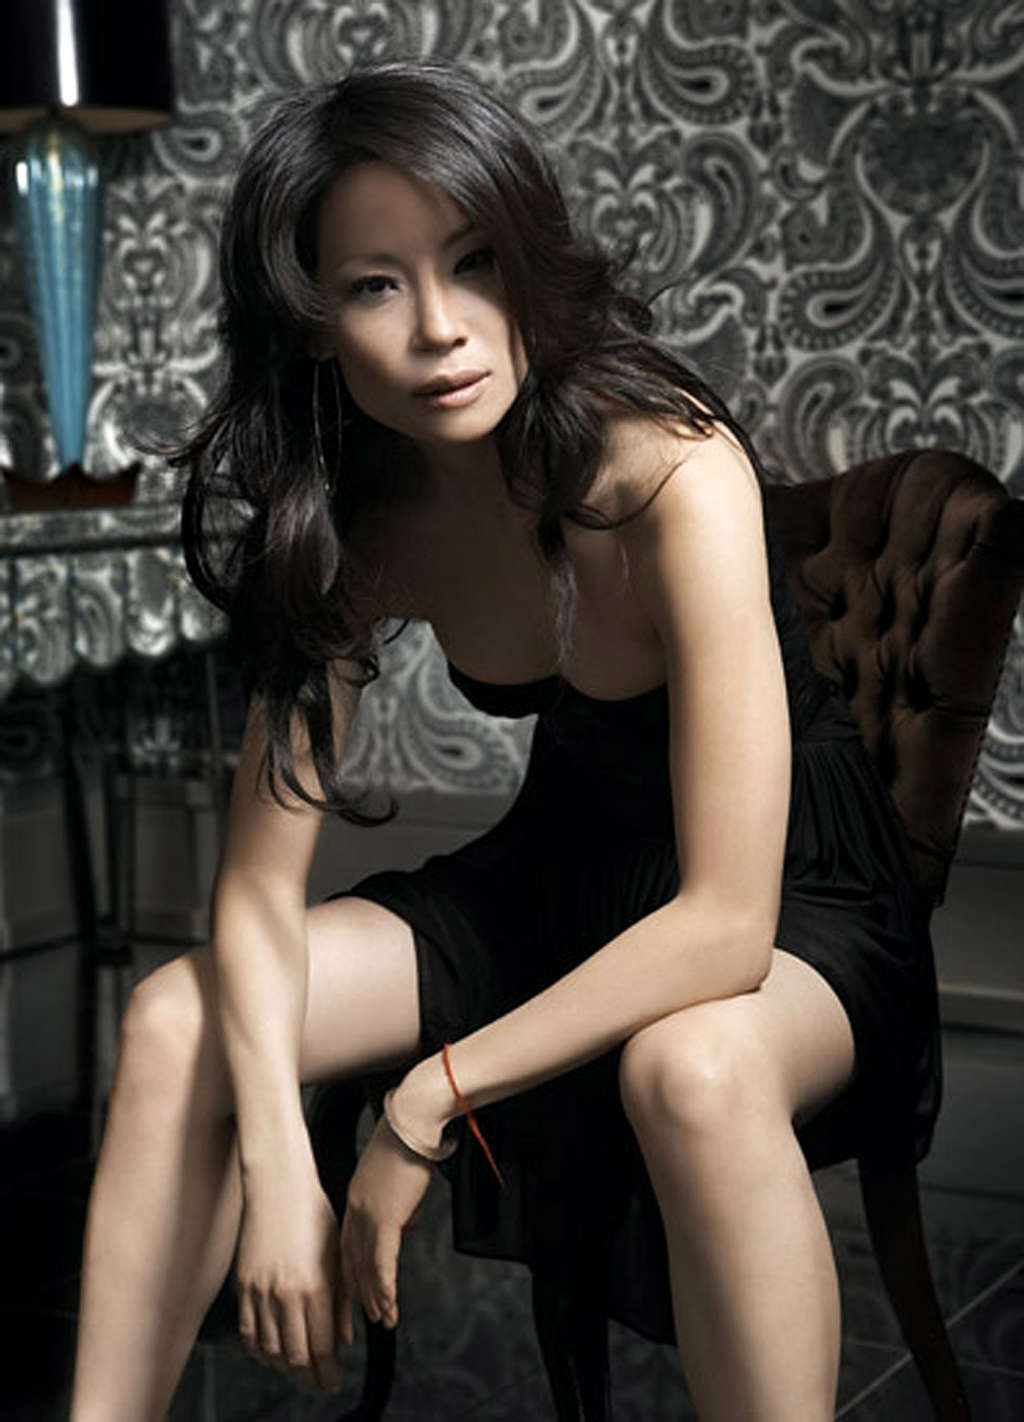 30 Hot Lucy Liu Bikini Pictures - Show Her Young Sexiest Feet Legs Look